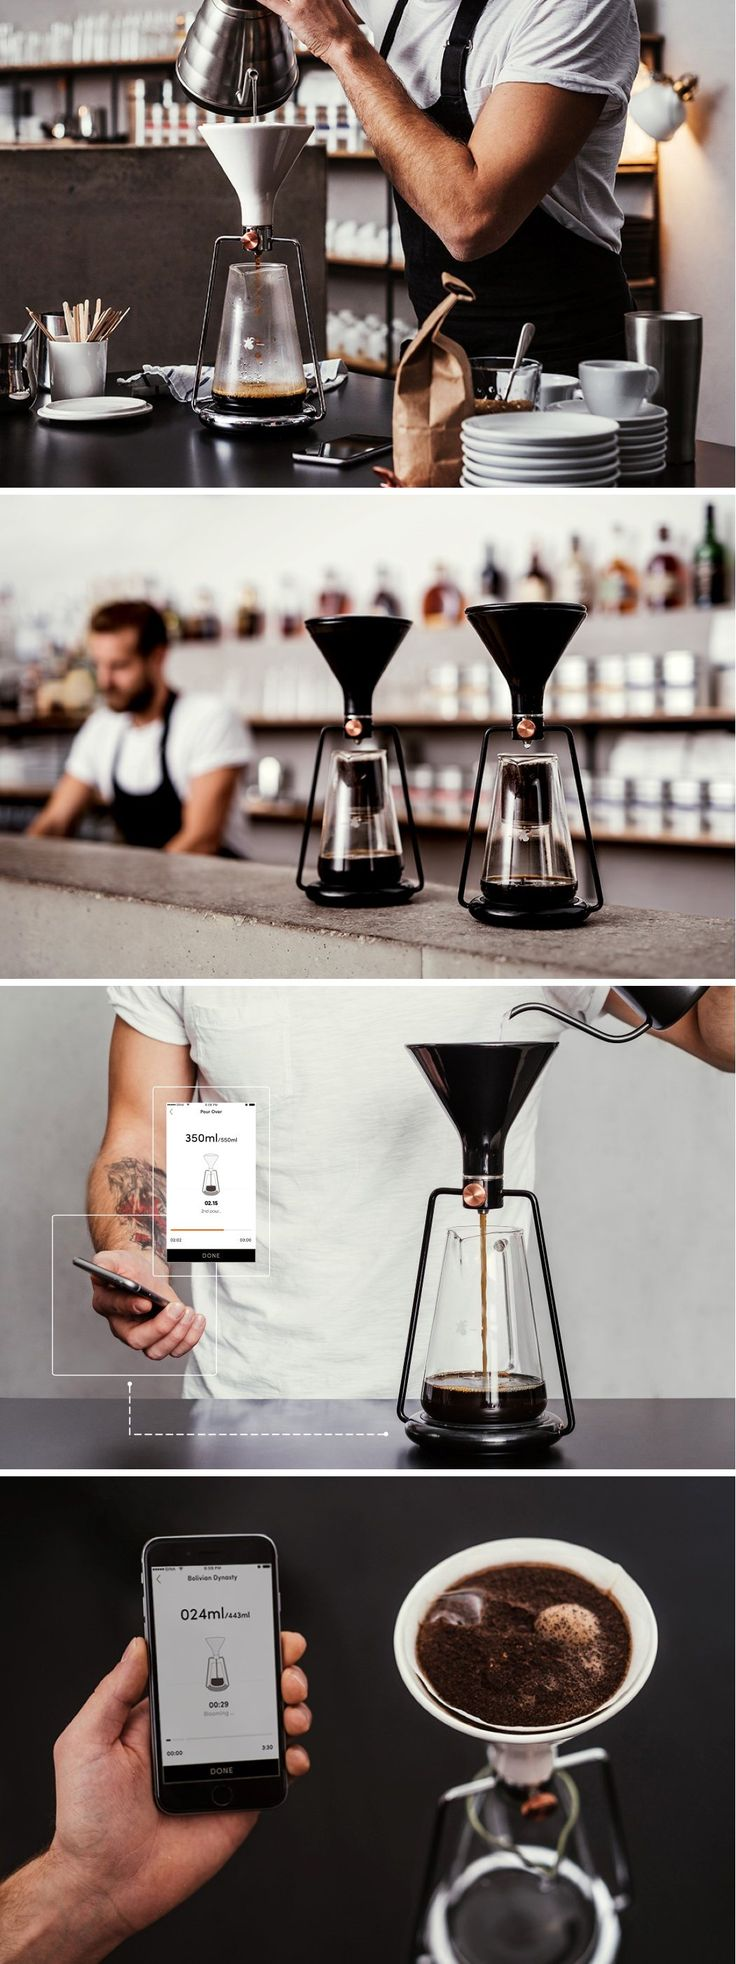 Gina invites you to tinker and experiment with its coffee making techniques, so you can brew your best kind of coffee.